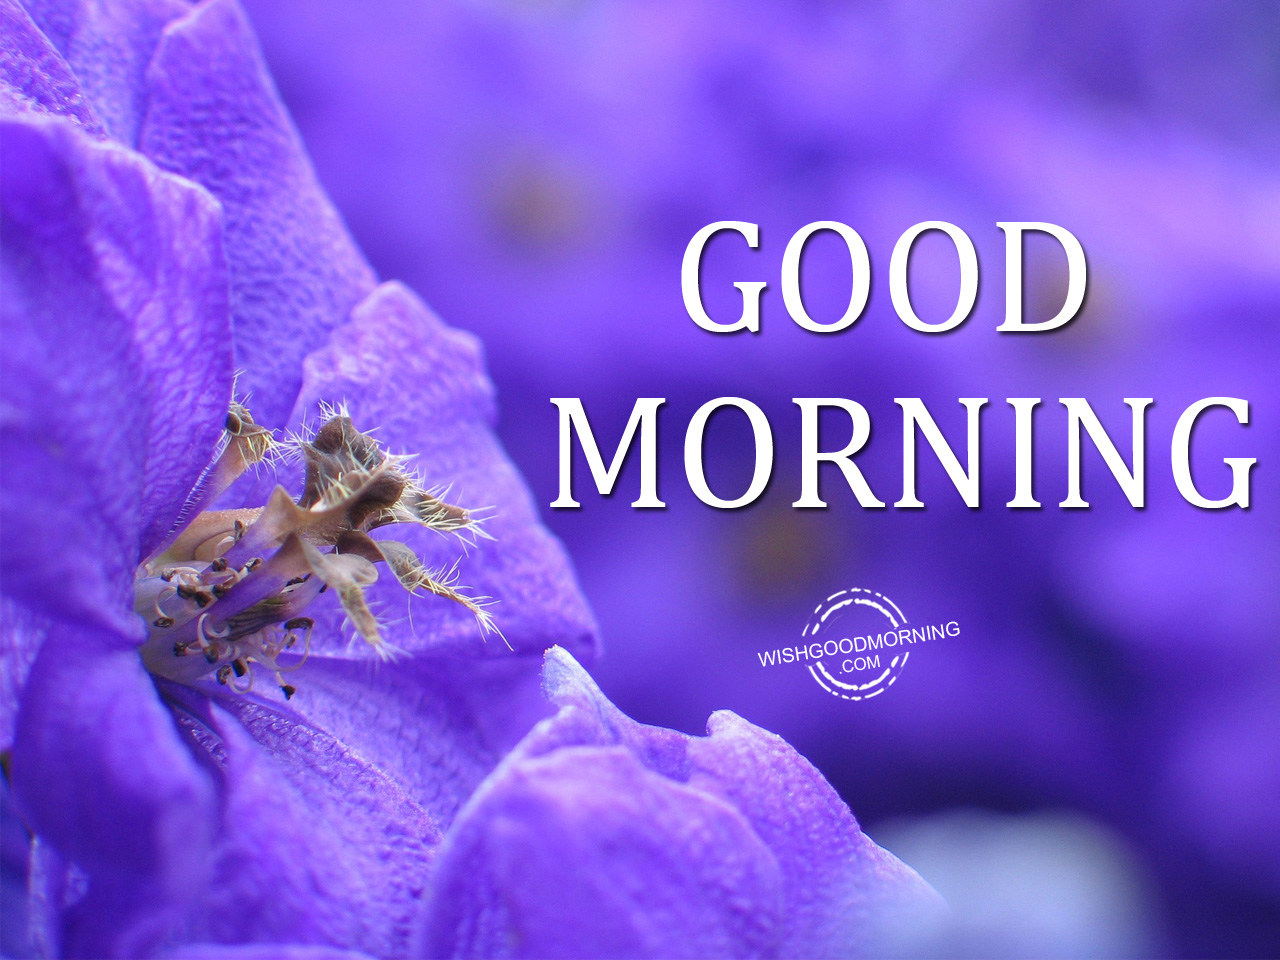 Good Morning Pictures And Images : Good morning wishes pictures